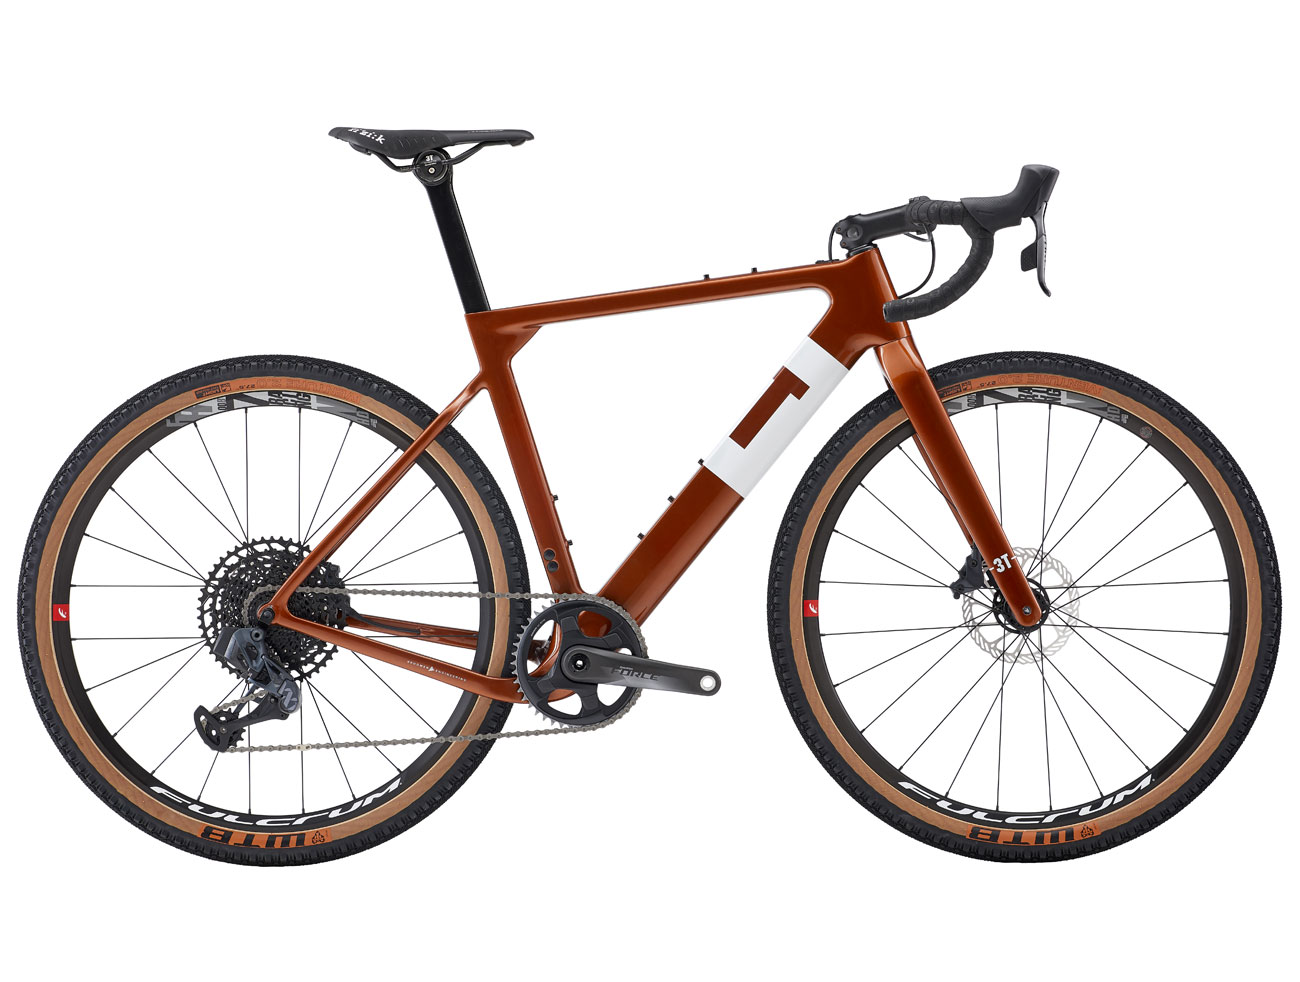 3T's Exploro Gets Friendlier Pricepoints with Rival, GRX and AXS Mullet Options 12